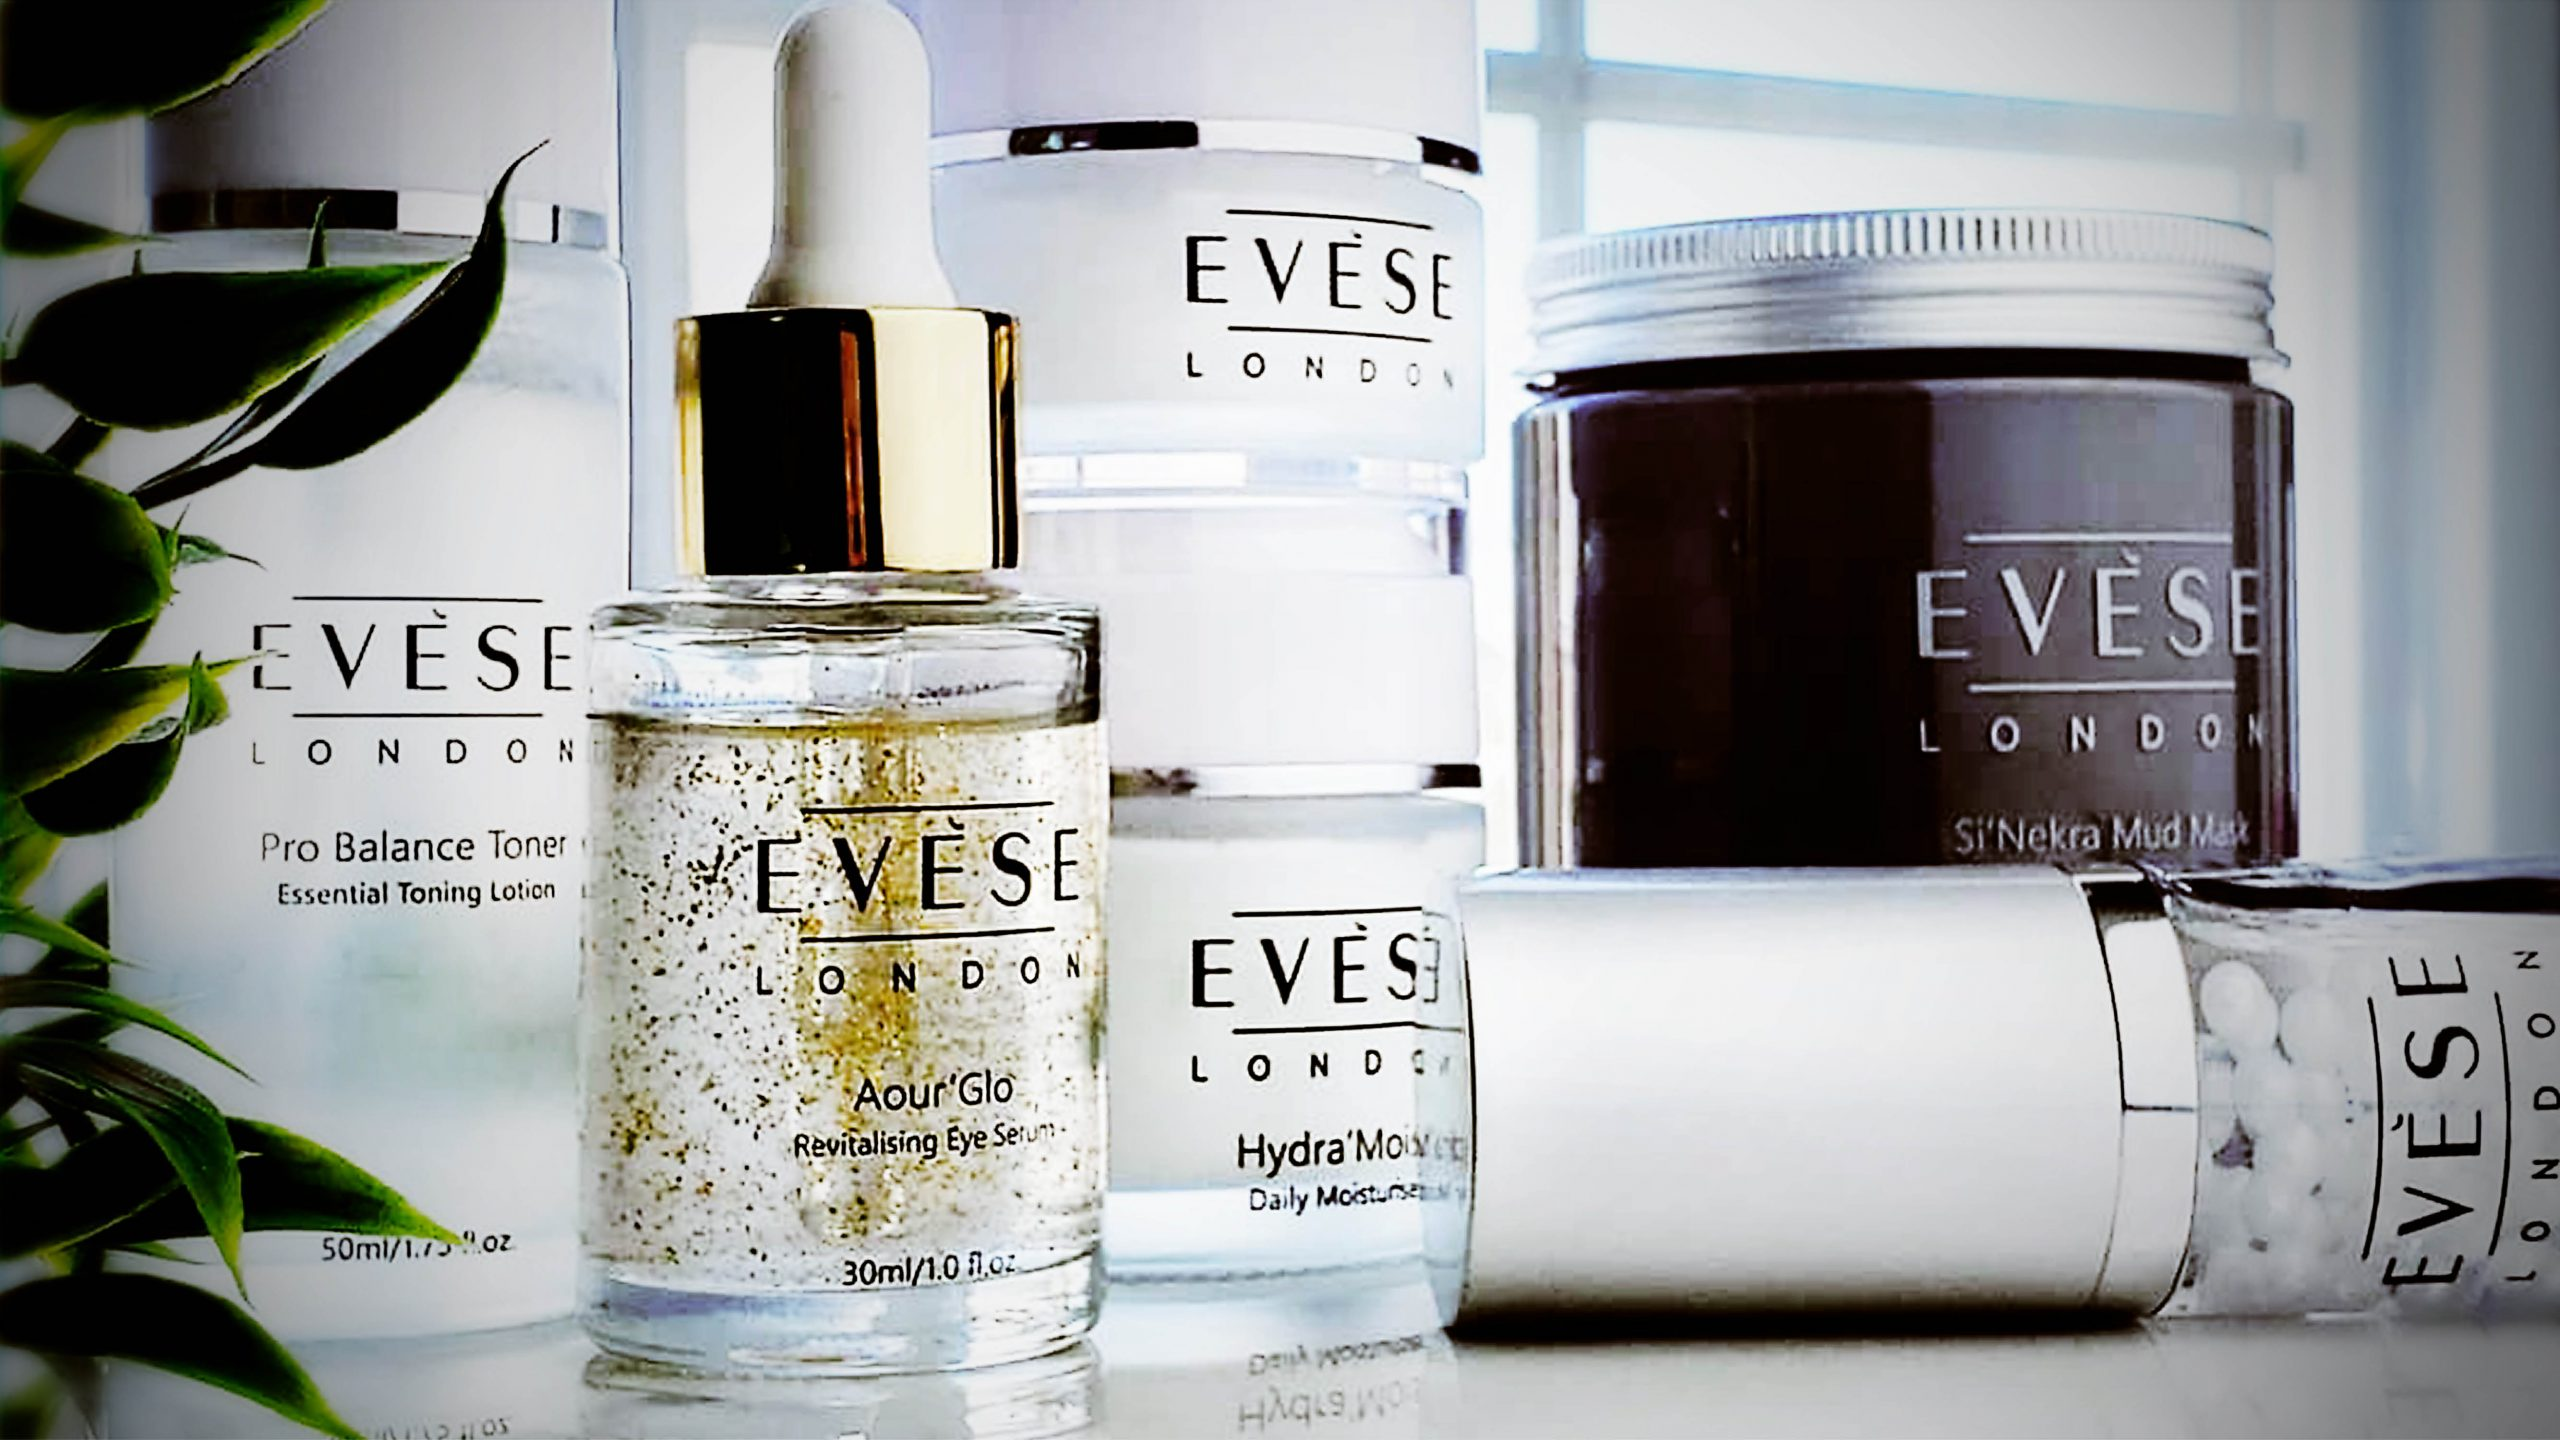 Win the entire Evese London range of luxury skincare essentials worth over £520